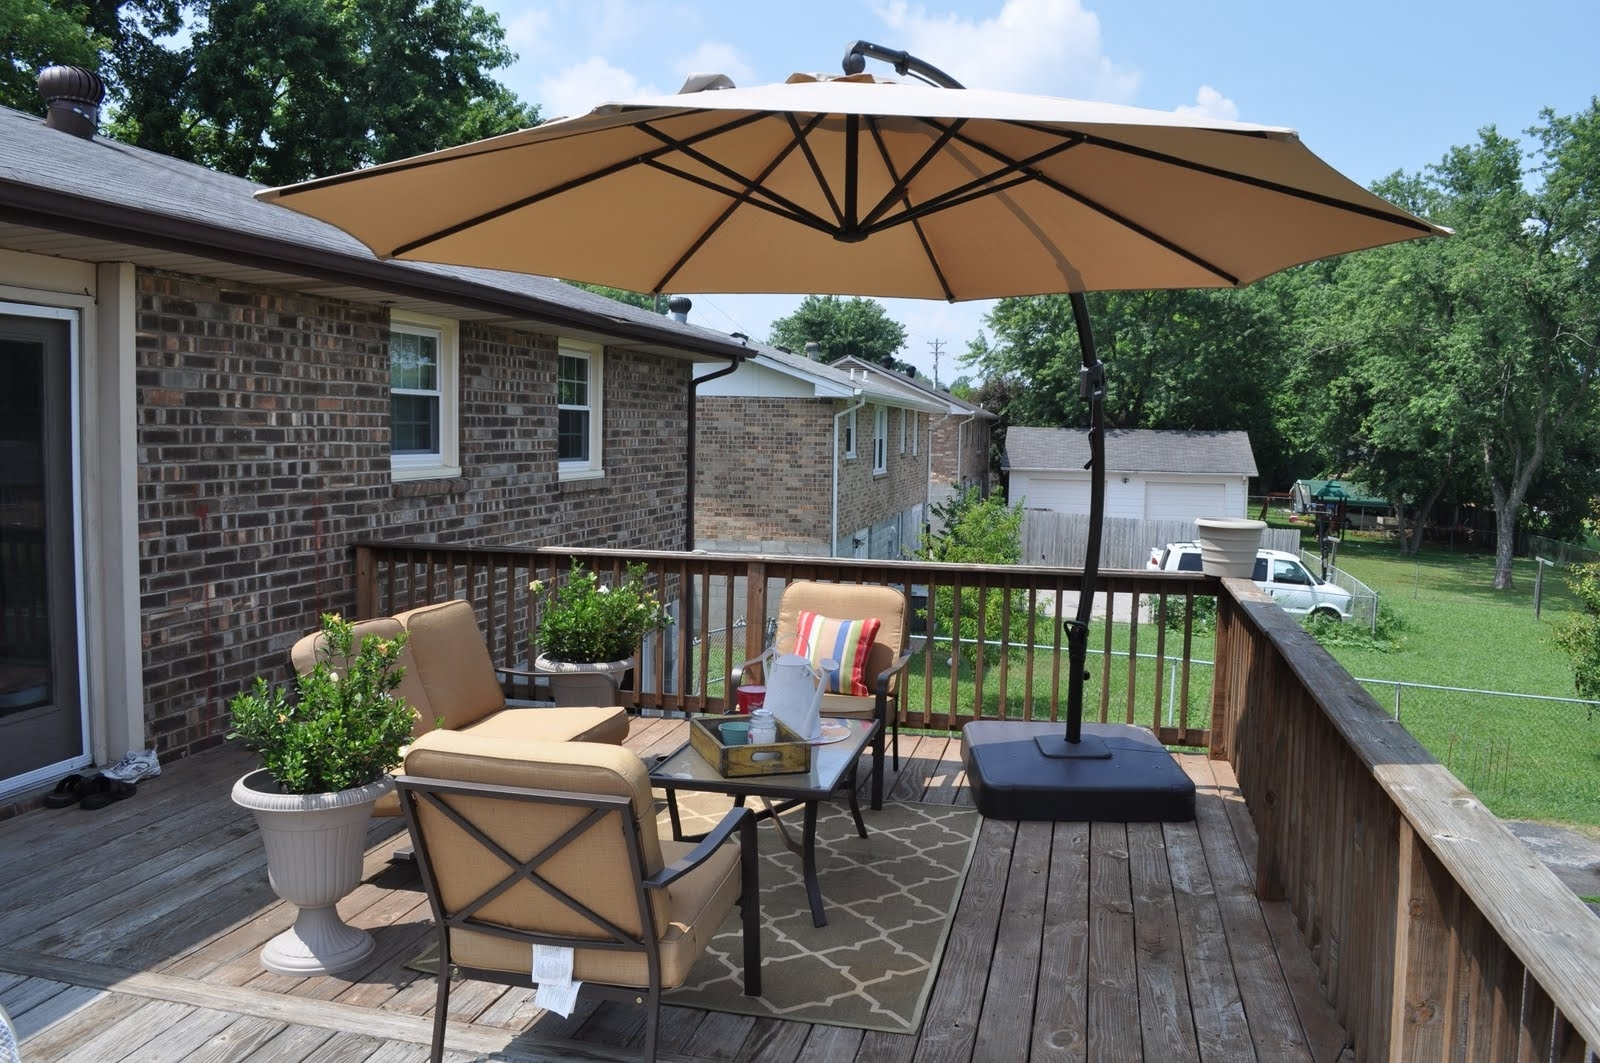 Patio: Awesome Umbrella Patio Set Frontgate Outdoor Furniture Regarding 2019 Patio Dining Umbrellas (View 13 of 20)